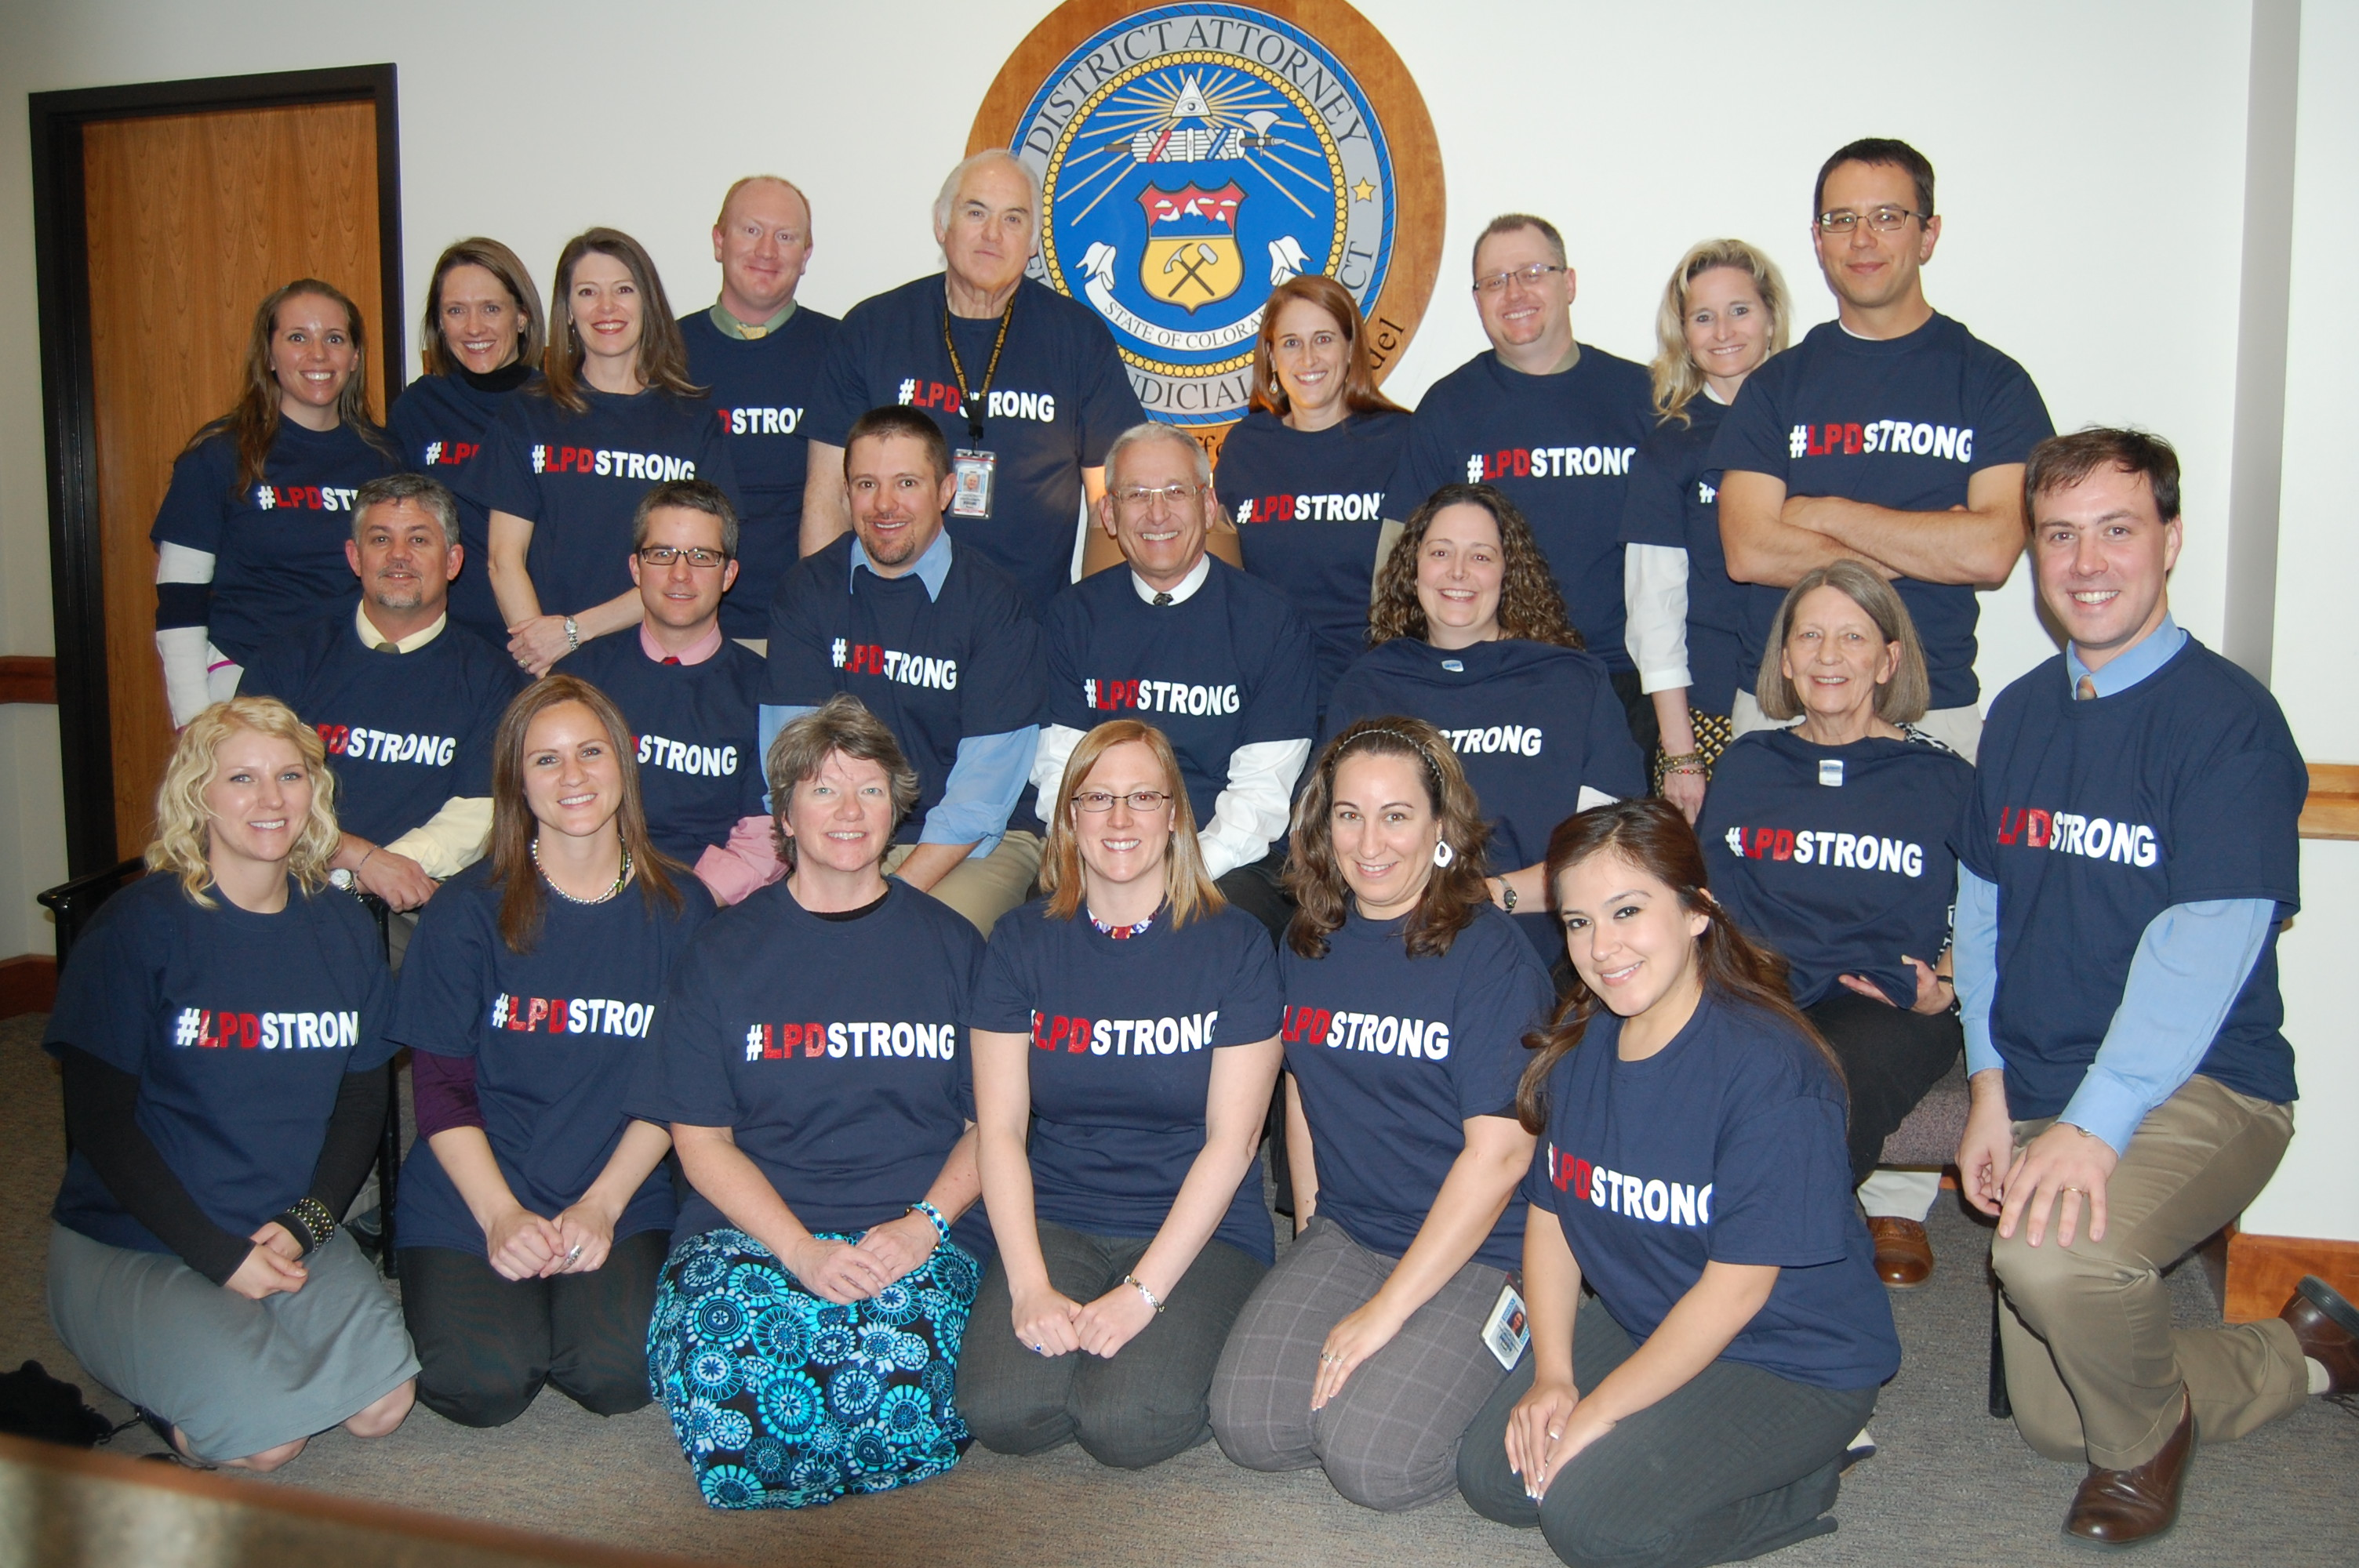 Image 4: LPD Strong in Support of the Loveland Police Department